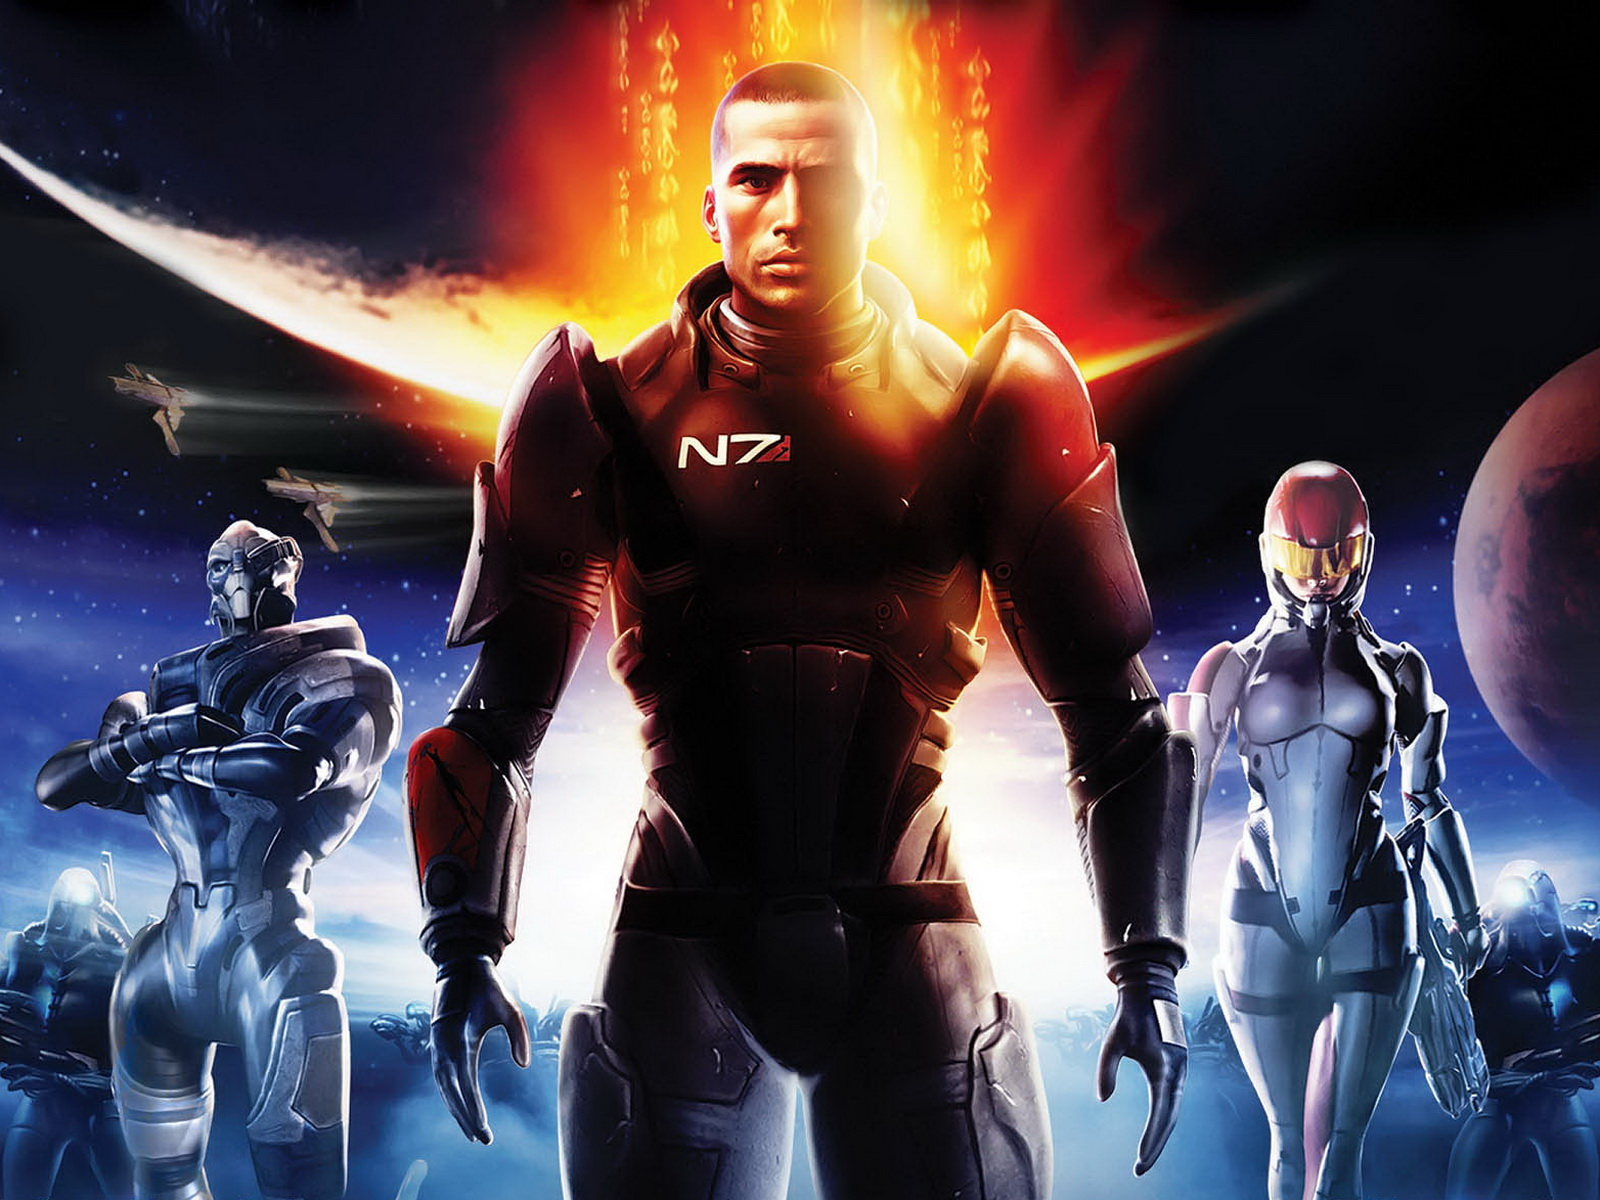 Mass Effect Game 503.81 Kb